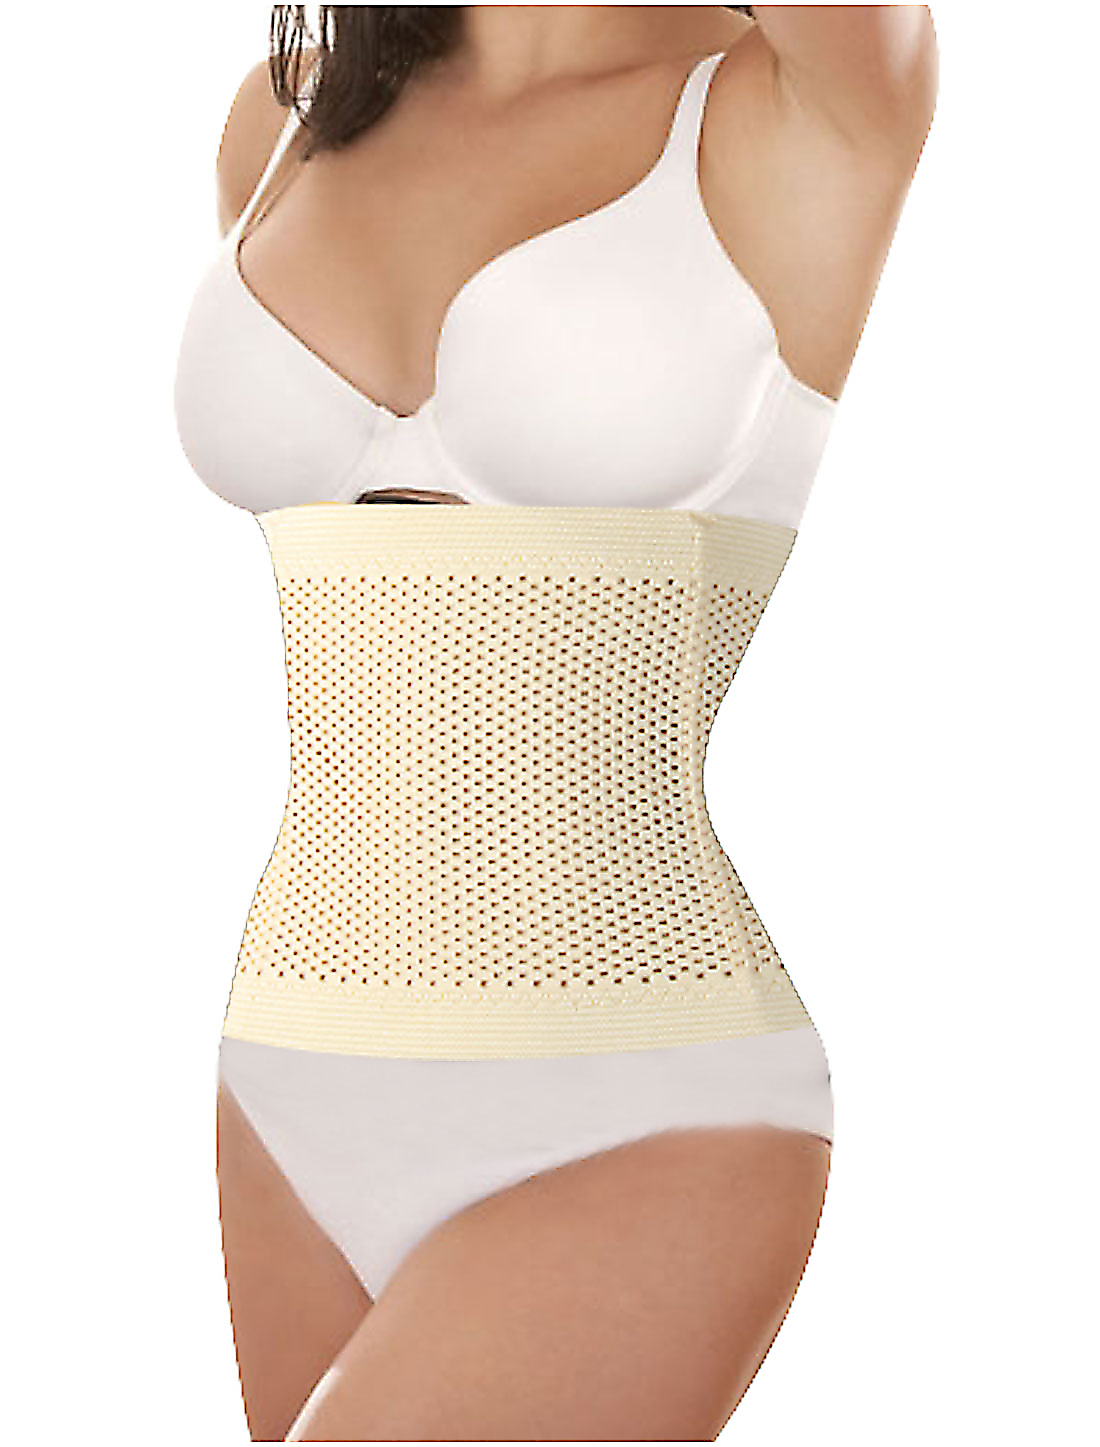 Women Hollow Out Holes Tummy Girdle Belt Shapewear Corset Waist Cincher Beige S